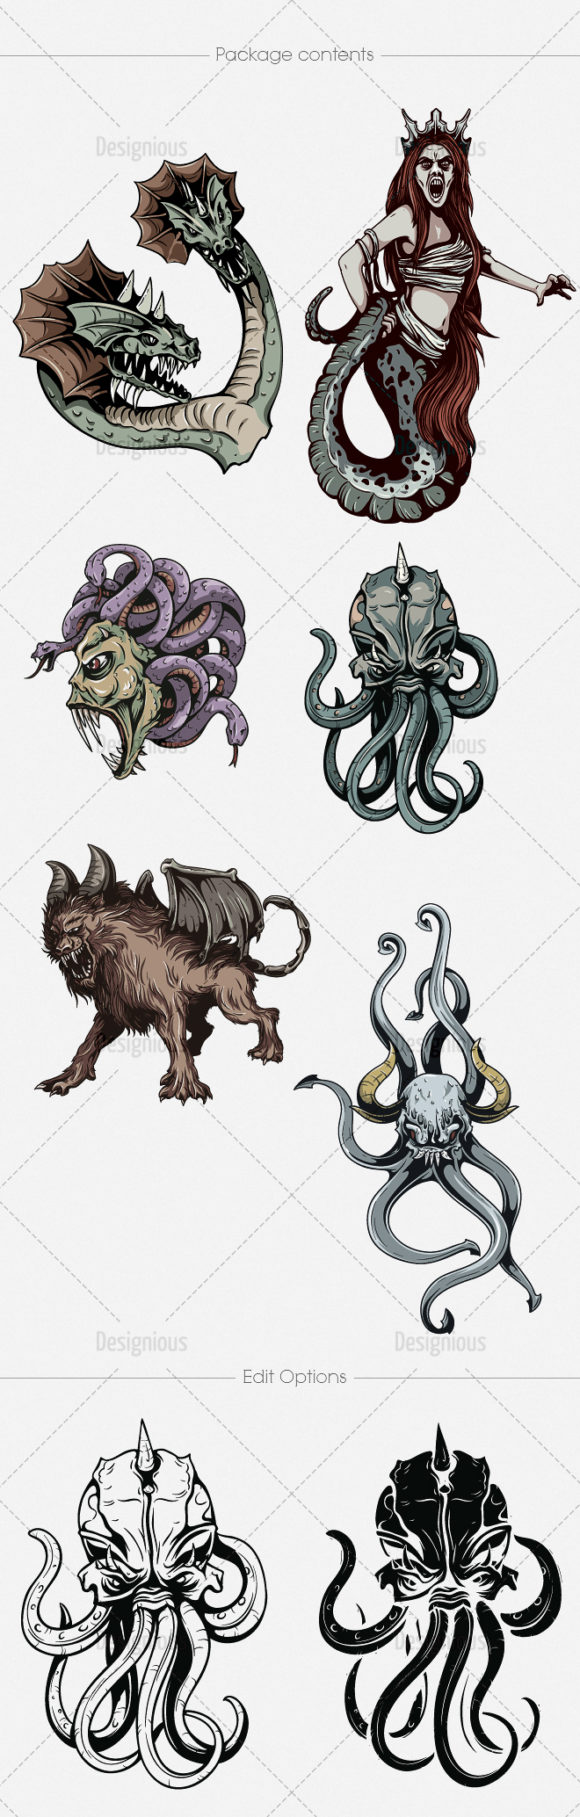 Mythical Creatures Vector Pack 2 Religion [tag]